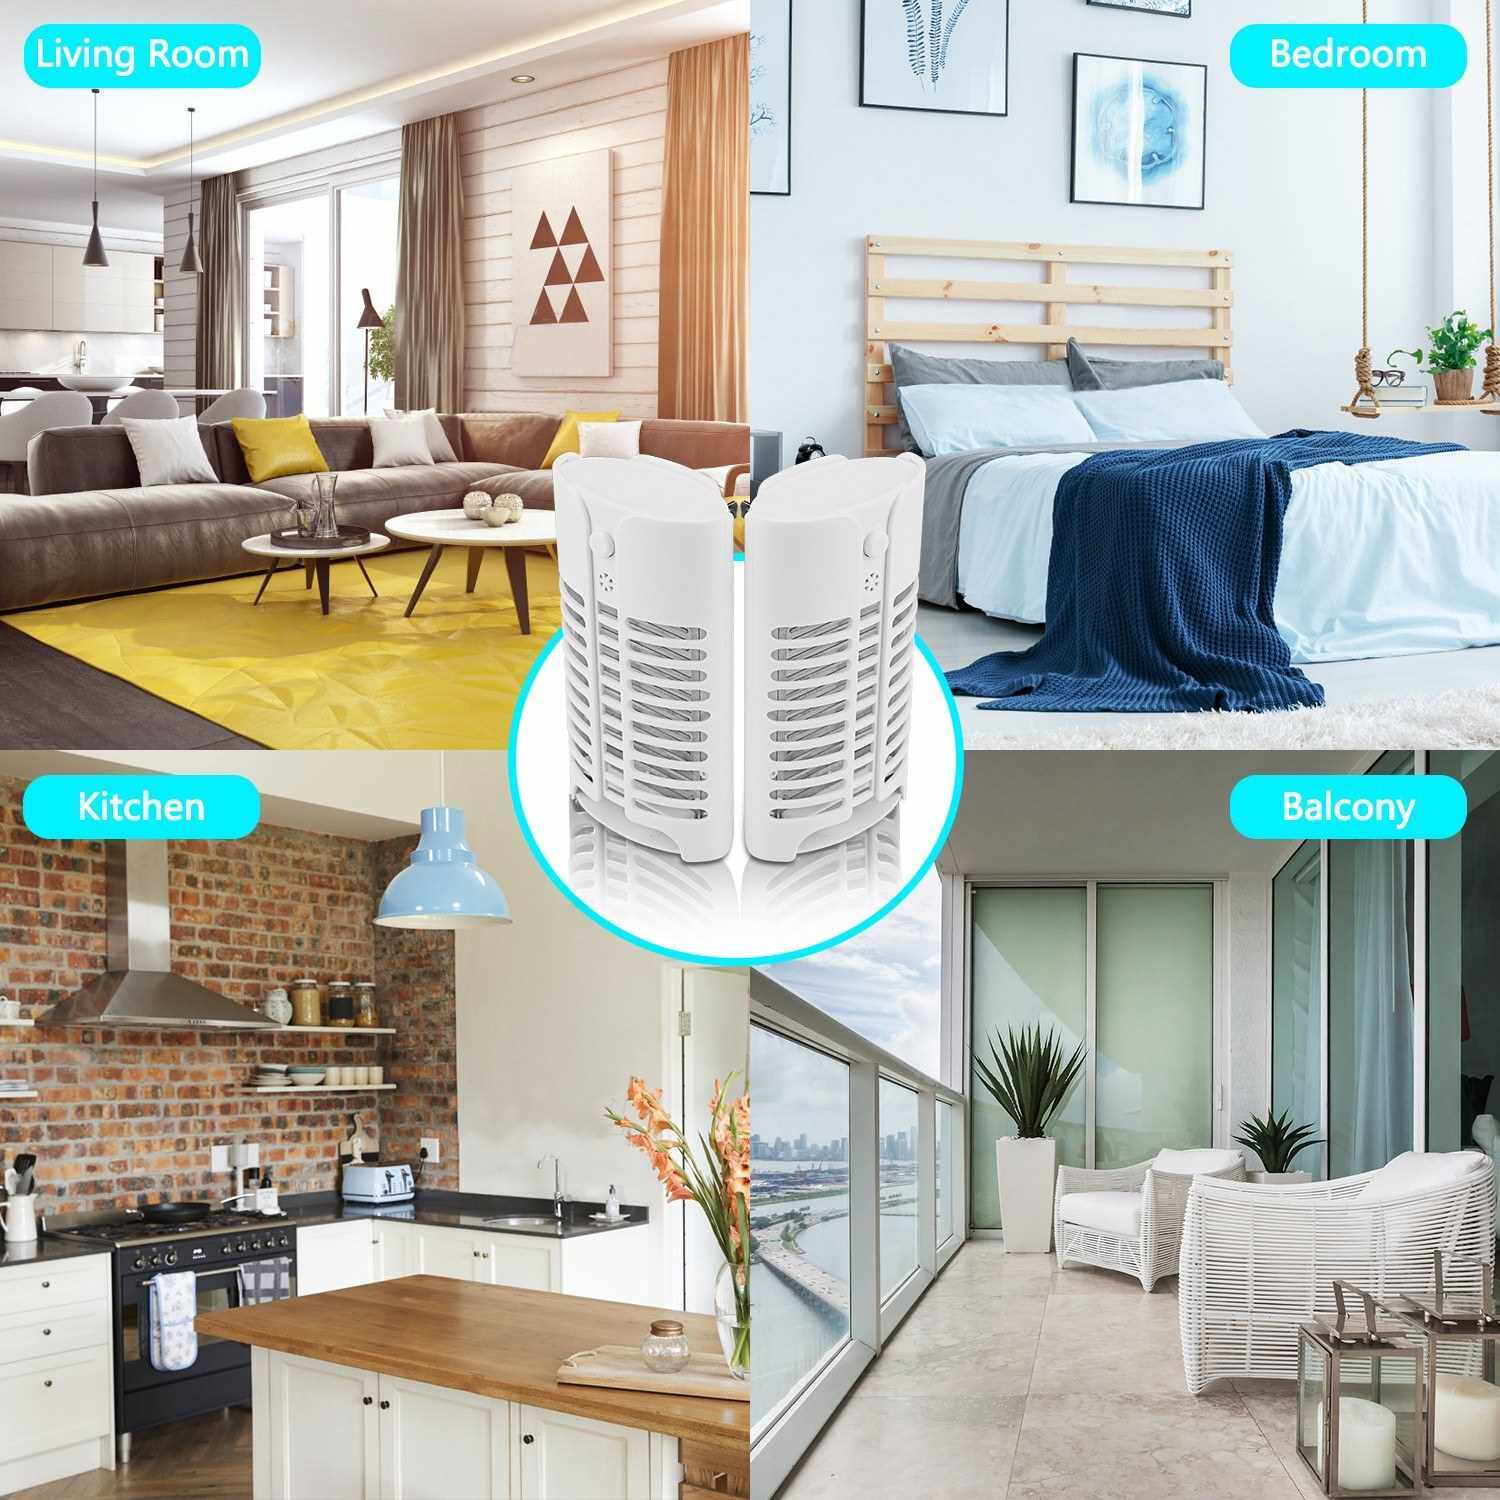 Best Selling 2PCS/Pack 220V Home Practical LED Socket Electric Mosquito Killer Lamp Mosquitoes Repellent Fly Bug Insect Trap Killer Zapper Night Lamp Lights (Type 2)